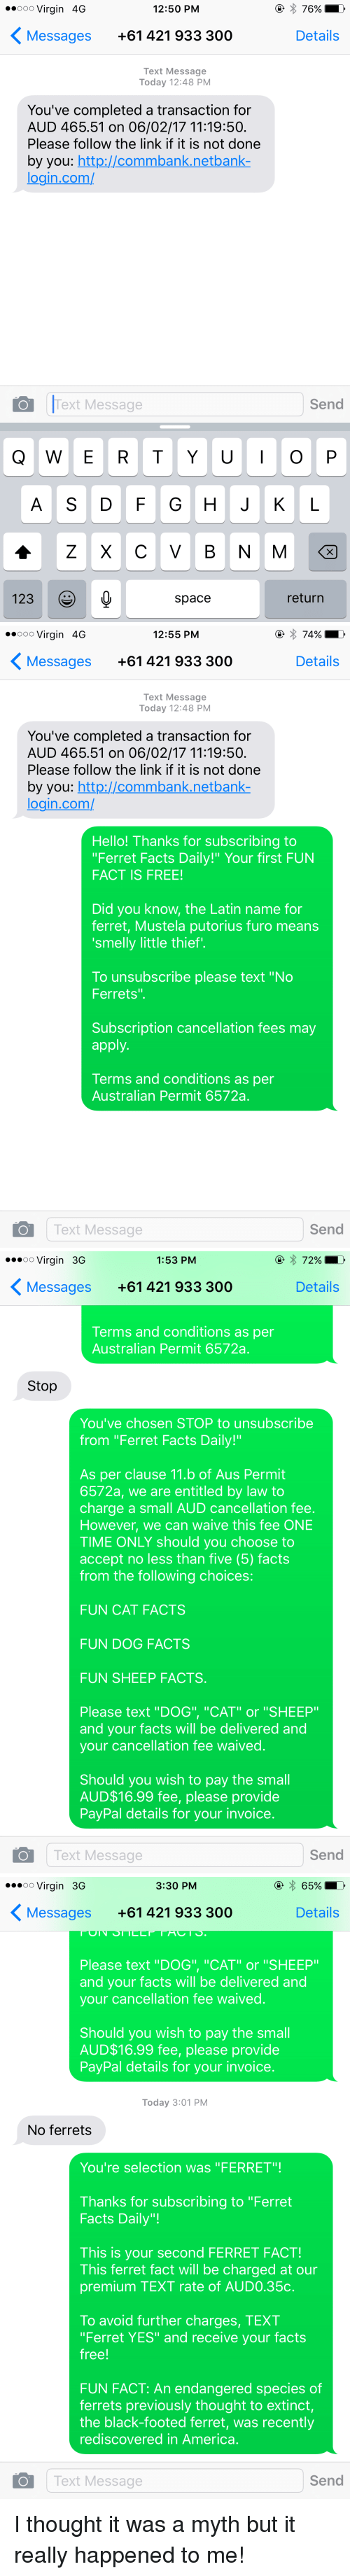 """Funny, Ferret, and Entitled: ooo Virgin 4G  12:50 PM  76% D  K Messages +61 421 933 300  Details  Text Message  Today 12:48 PM  You've completed a transaction for  AUD 465.51 on 06/02/17 11:19:50.  Please follow the link if it is not done  by you  http://commbank netbank  login com/  Send  O Text Message  I O  Q W E R T Y U  A S D F G H J K L  A Z X C V B N M  123  space  return   ooo Virgin 4G  12:55 PM  74%.  K Messages +61 421 933 300  Details  Text Message  Today 12:48 PM  You've completed a transaction for  AUD 465.51 on 06/02/17 11:19:50.  Please follow the link if it is not done  by you  http://commbank netbank  login com/  Hello! Thanks for subscribing to  """"Ferret Facts Daily!"""" Your first FUN  FACT IS FREE!  Did you know, the Latin name for  ferret, Mustela putorius furo means  smelly little thief'.  To unsubscribe please text """"No  Ferrets  Subscription cancellation fees may  apply.  Terms and conditions as per  Australian Permit 6572a.  Text Message  Send  O  ...oo Virgin 3G  1:53 PM  K Messages +61 421 933 300  Details  Terms and conditions as per  Australian Permit 6572a.  Stop  You've chosen STOP to unsubscribe  from """"Ferret Facts Daily!""""  As per clause 11.b of Aus Permit  6572a, we are entitled by law to  charge a small AUD cancellation fee.  However, we can waive this fee ONE  TIME ONLY should you choose to  accept no less than five (5) facts  from the following choices:  FUN CAT FACTS  FUN DOG FACTS  FUN SHEEP FACTS.  Please text """"DOG"""", """"CAT"""" or """"SHEEP  and your facts will be delivered and  your cancellation fee waived  Should you wish to pay the small  AUD$16.99 fee, please provide  PayPal details for your invoice.  Text Message  Send   ...oo Virgin 3G  65% D  3:30 PM  K Messages +61 421 933 300  Details  Please text """"DOG"""", """"CAT"""" or """"SHEEP""""  and your facts will be delivered and  your cancellation fee waived  Should you wish to pay the small  AUD$16.99 fee, please provide  PayPal details for your invoice.  Today 3:01 PM  No ferrets  You're selection w"""